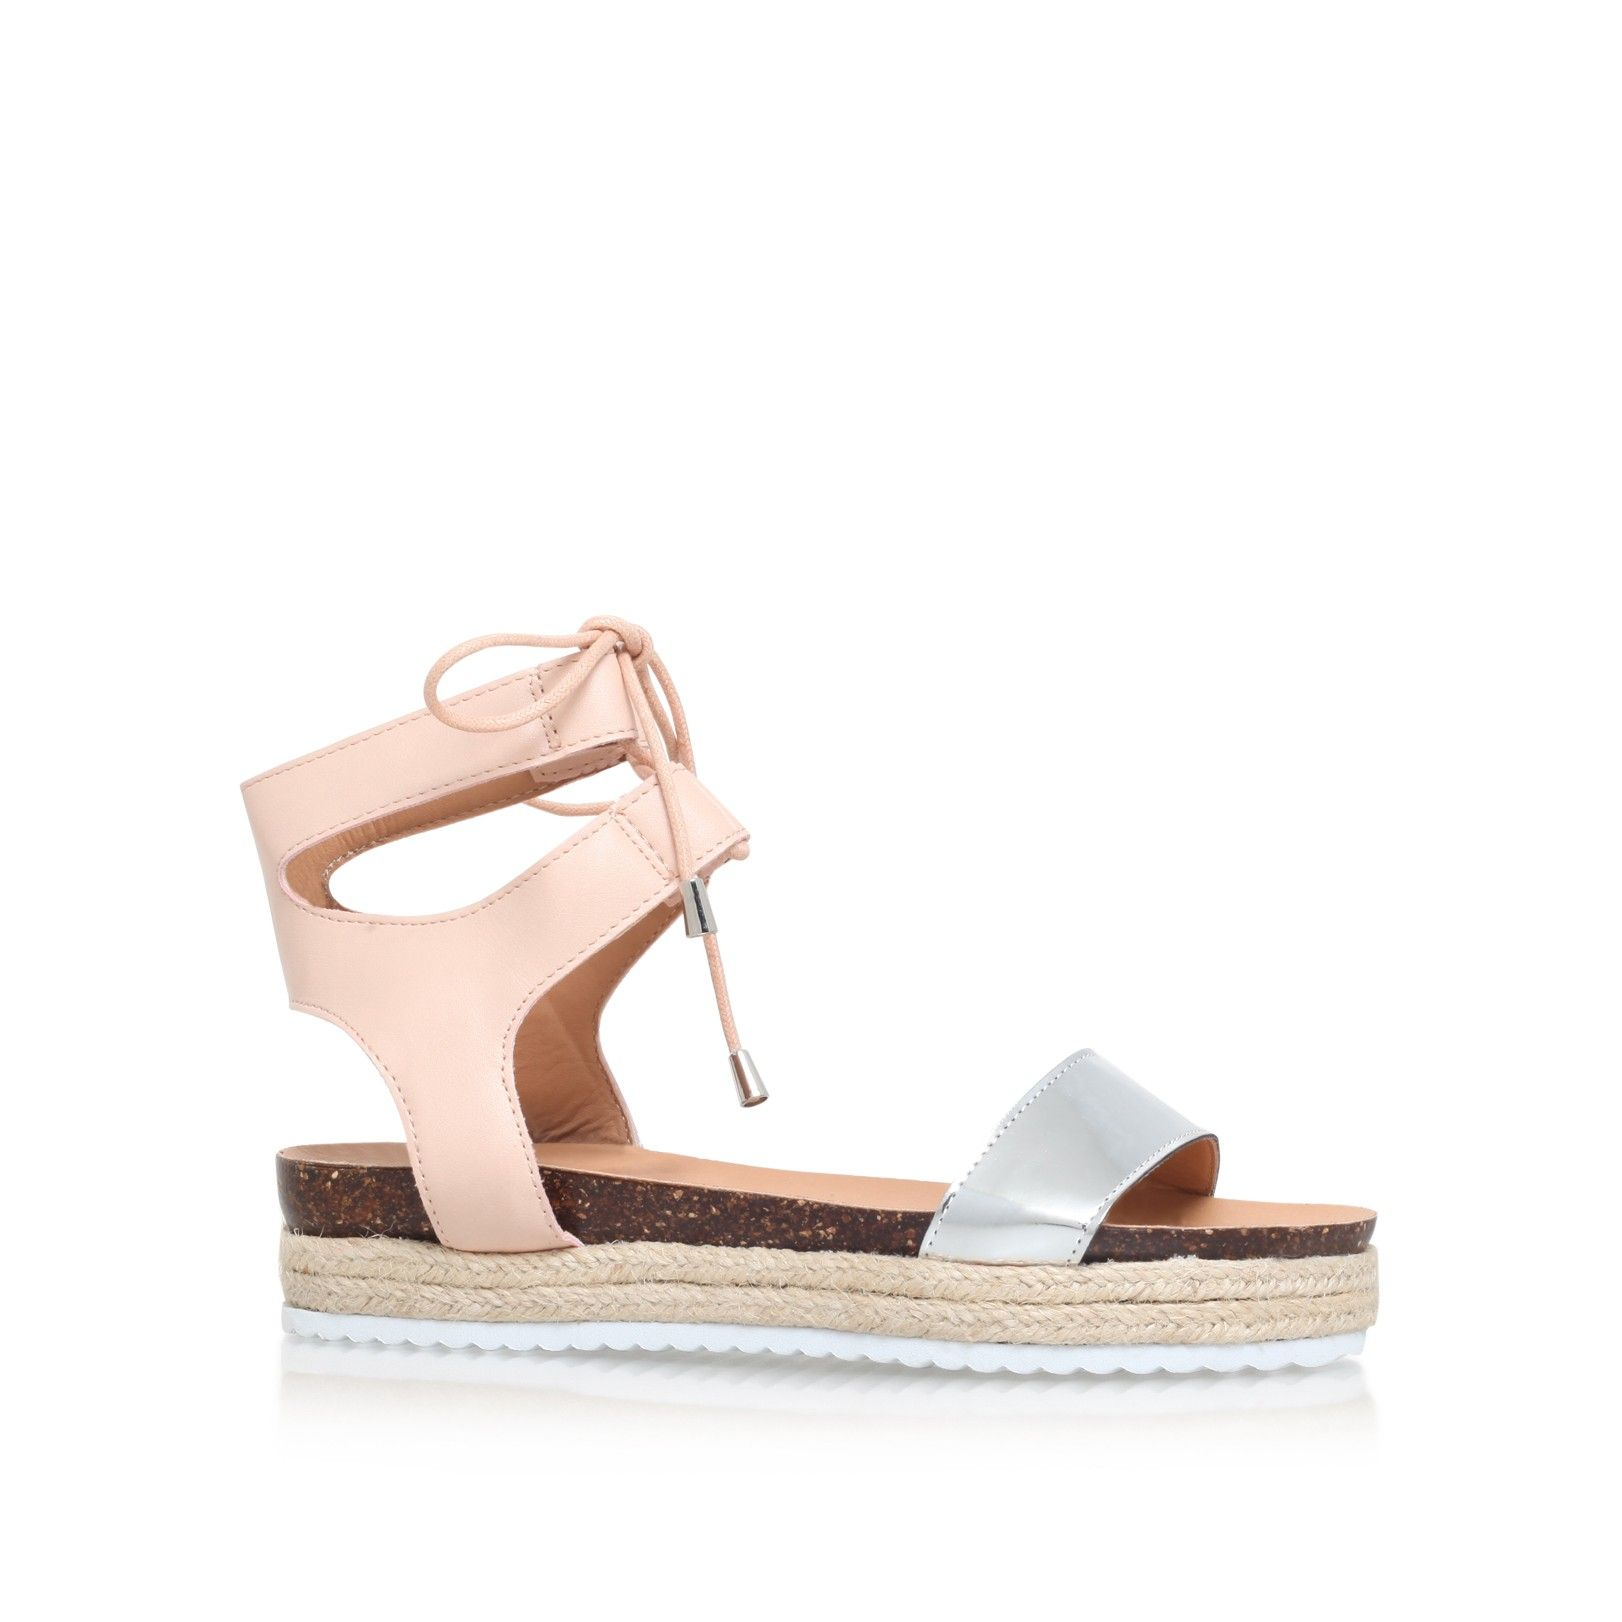 peony nude flat sandals from Miss KG